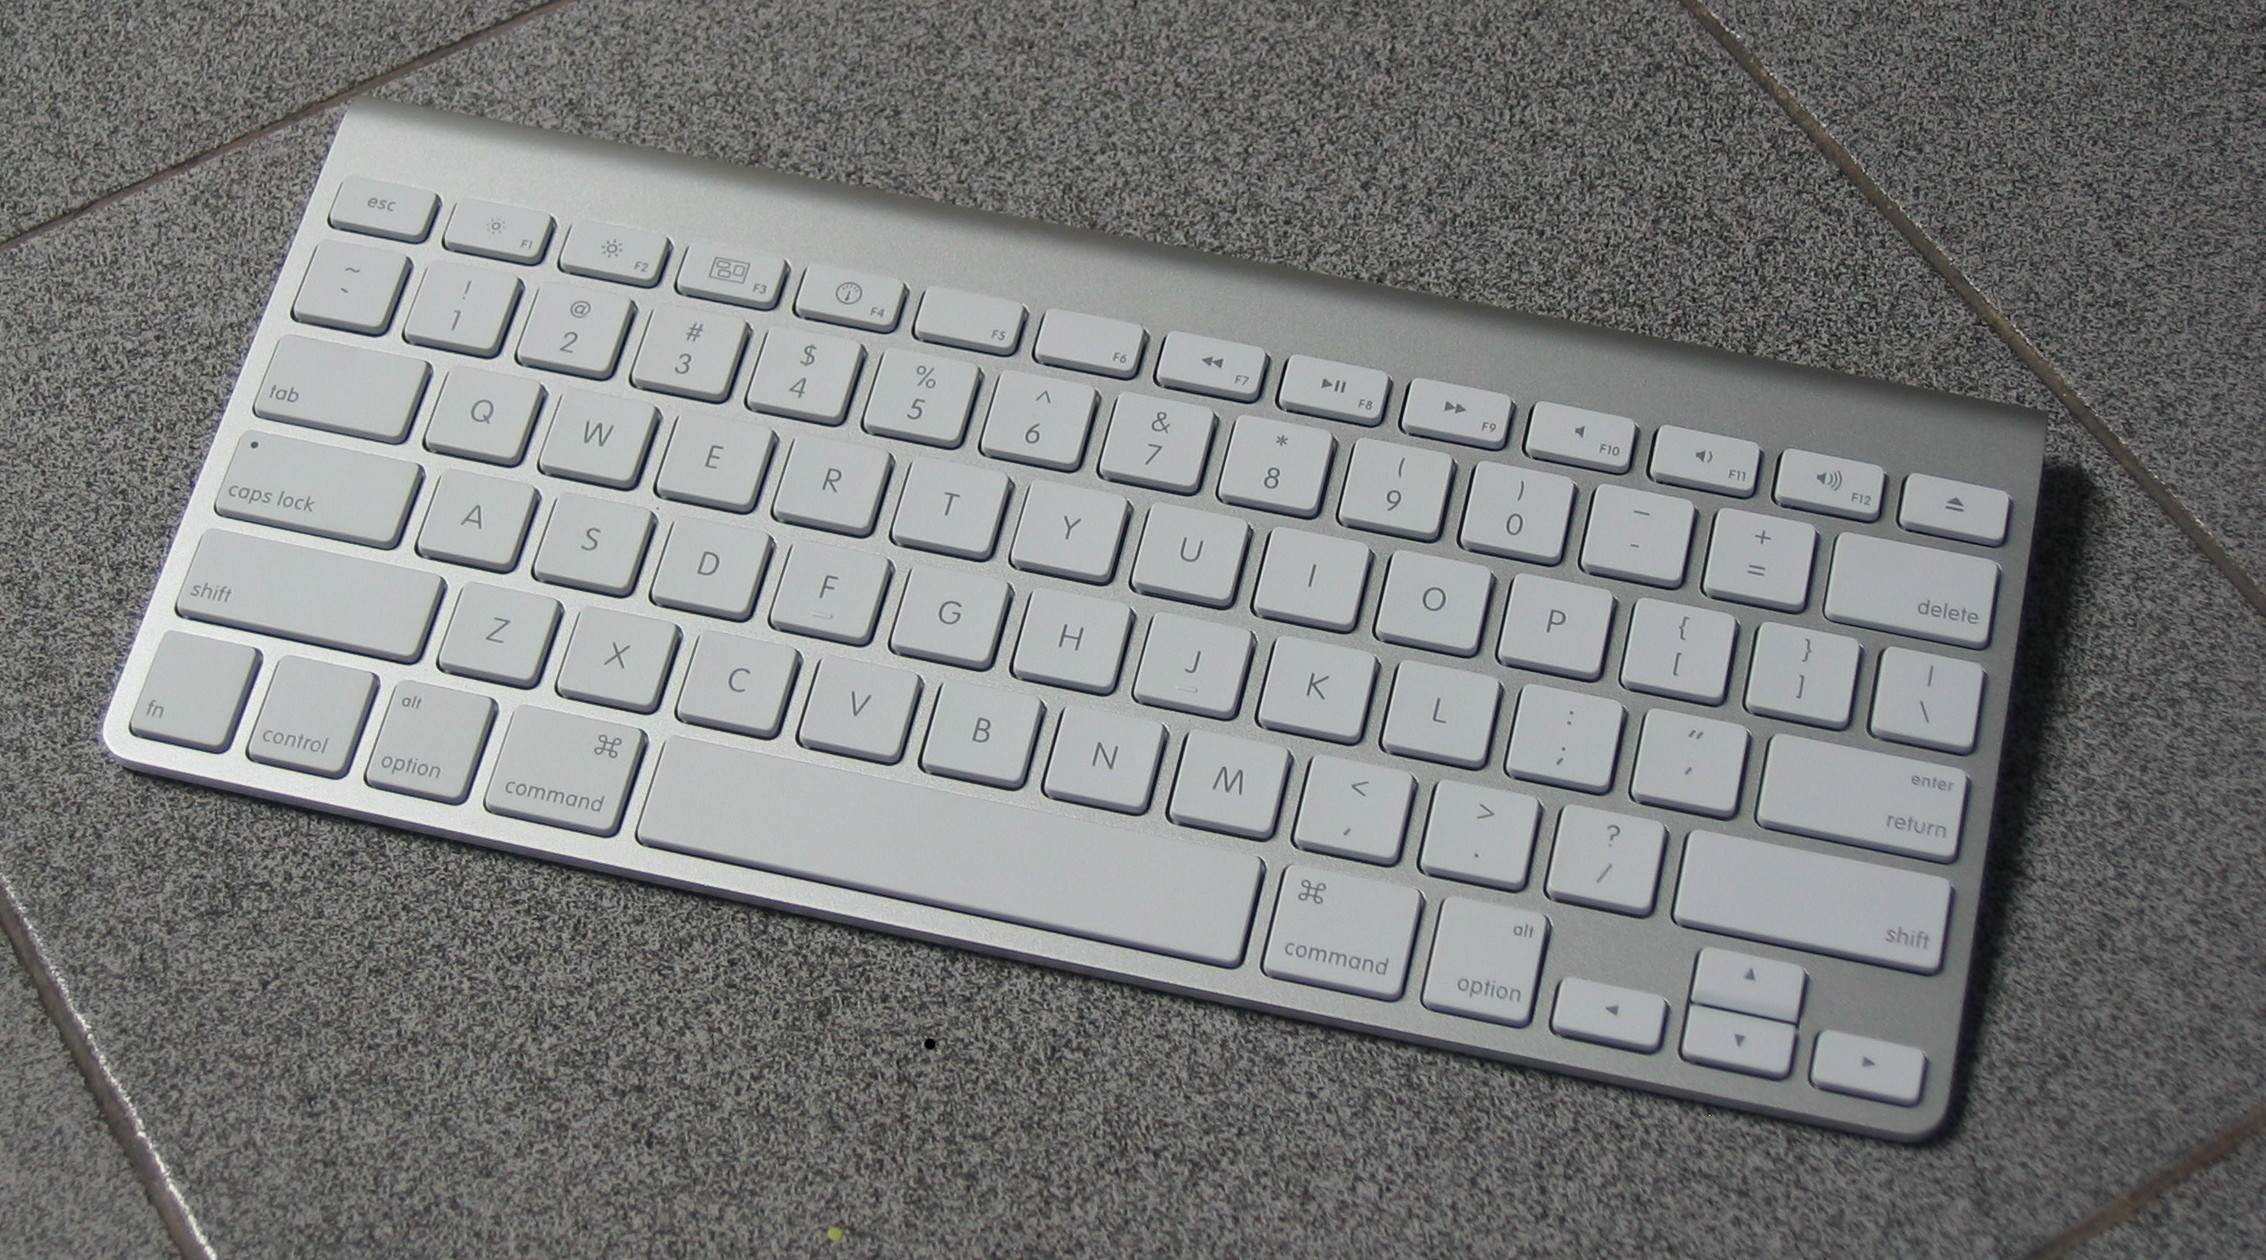 840d76fe090 Apple Wireless Keyboard - Wikipedia